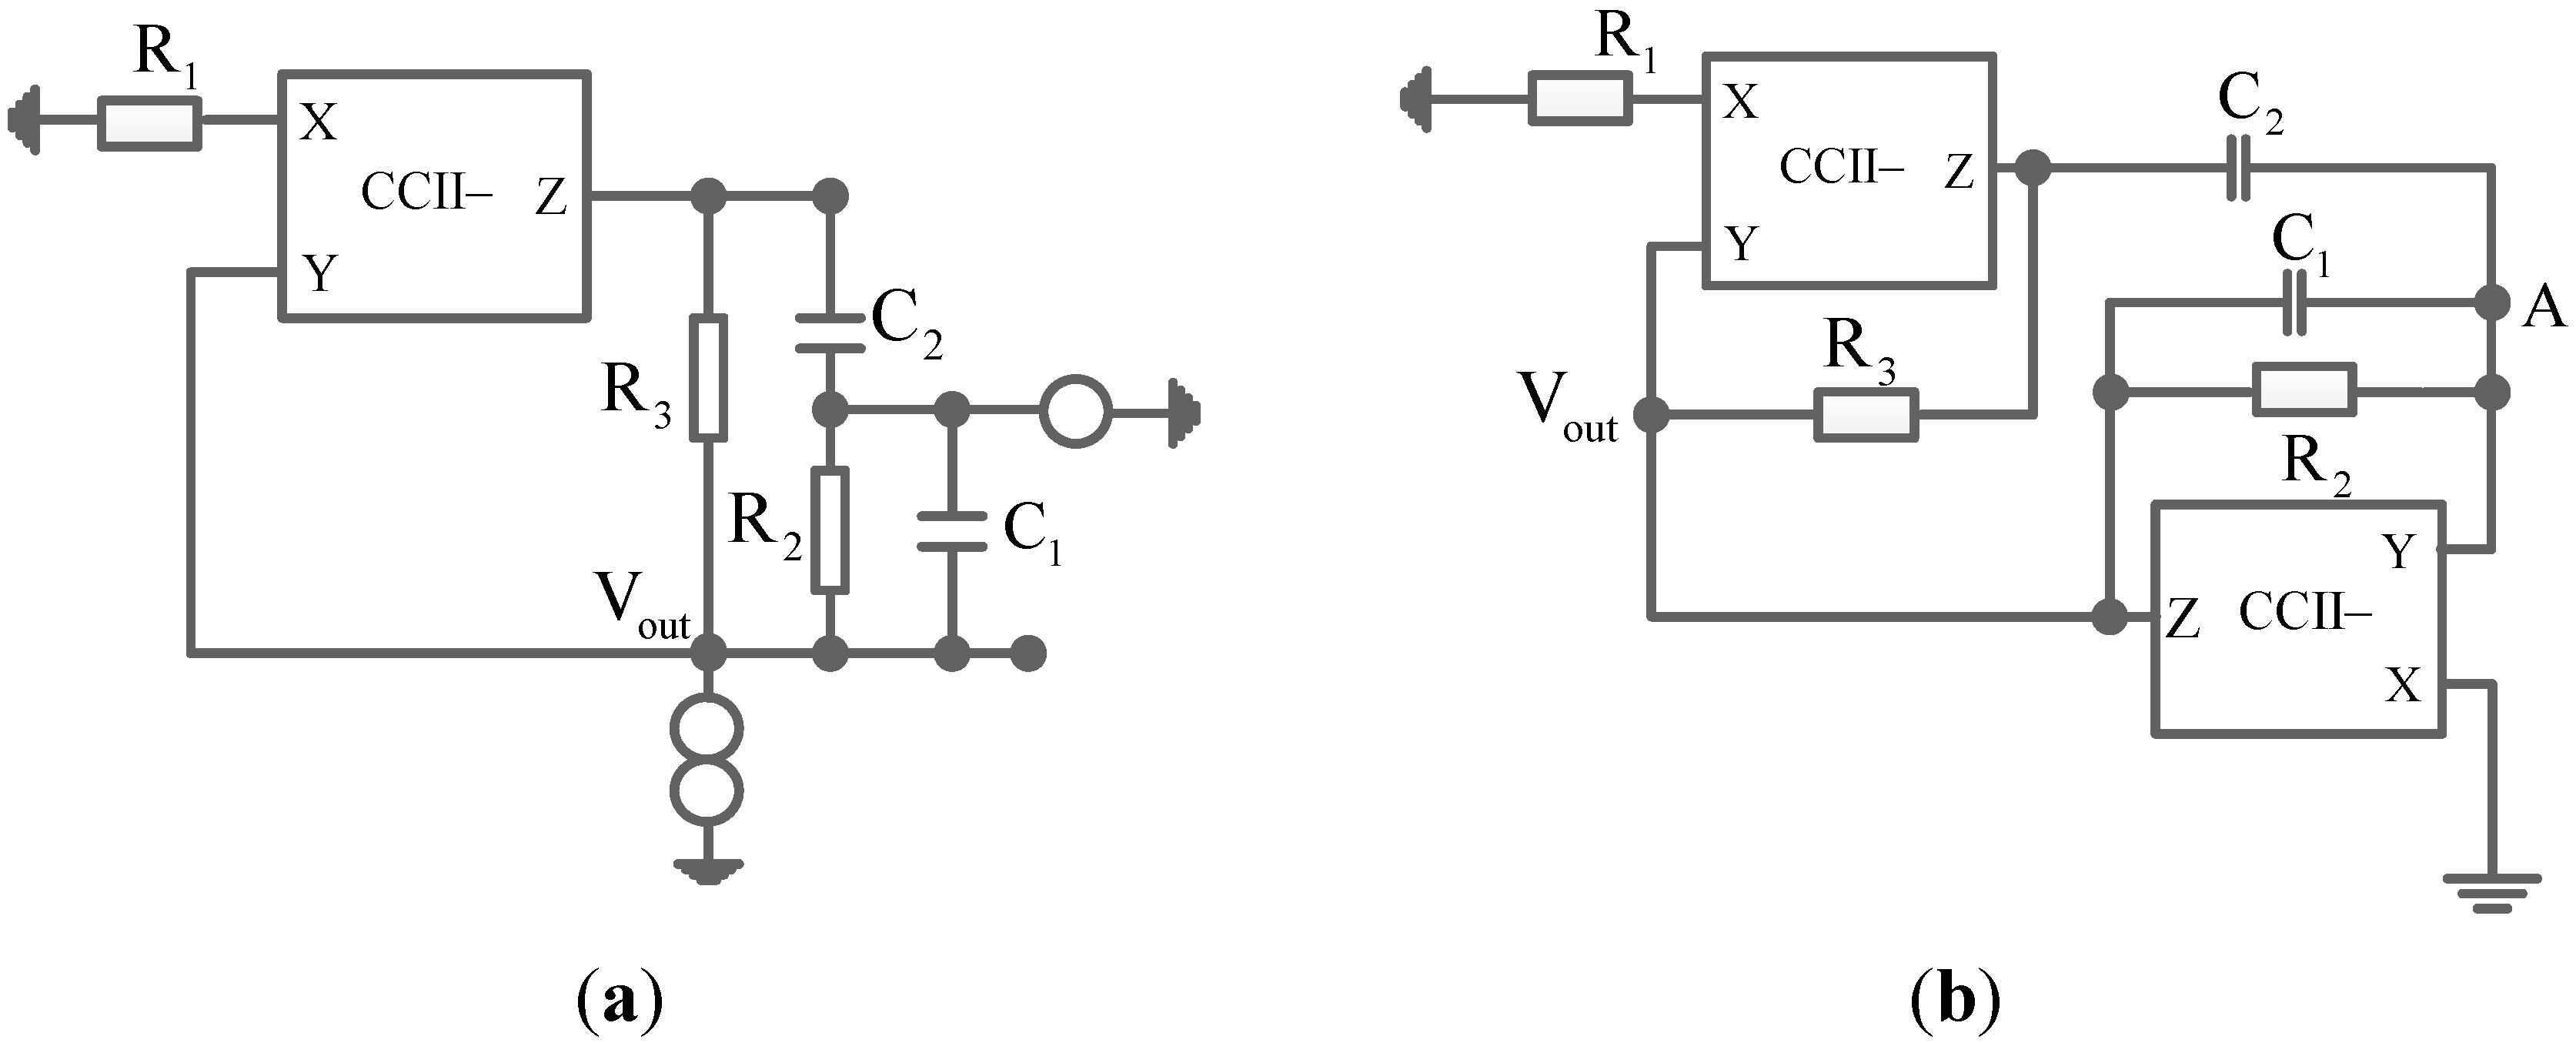 Applied Sciences Free Full Text Derivation Of Oscillators From Representative Schematic A Currentfeedback Opamp Or Amplifier Applsci 04 00482 G007 1024